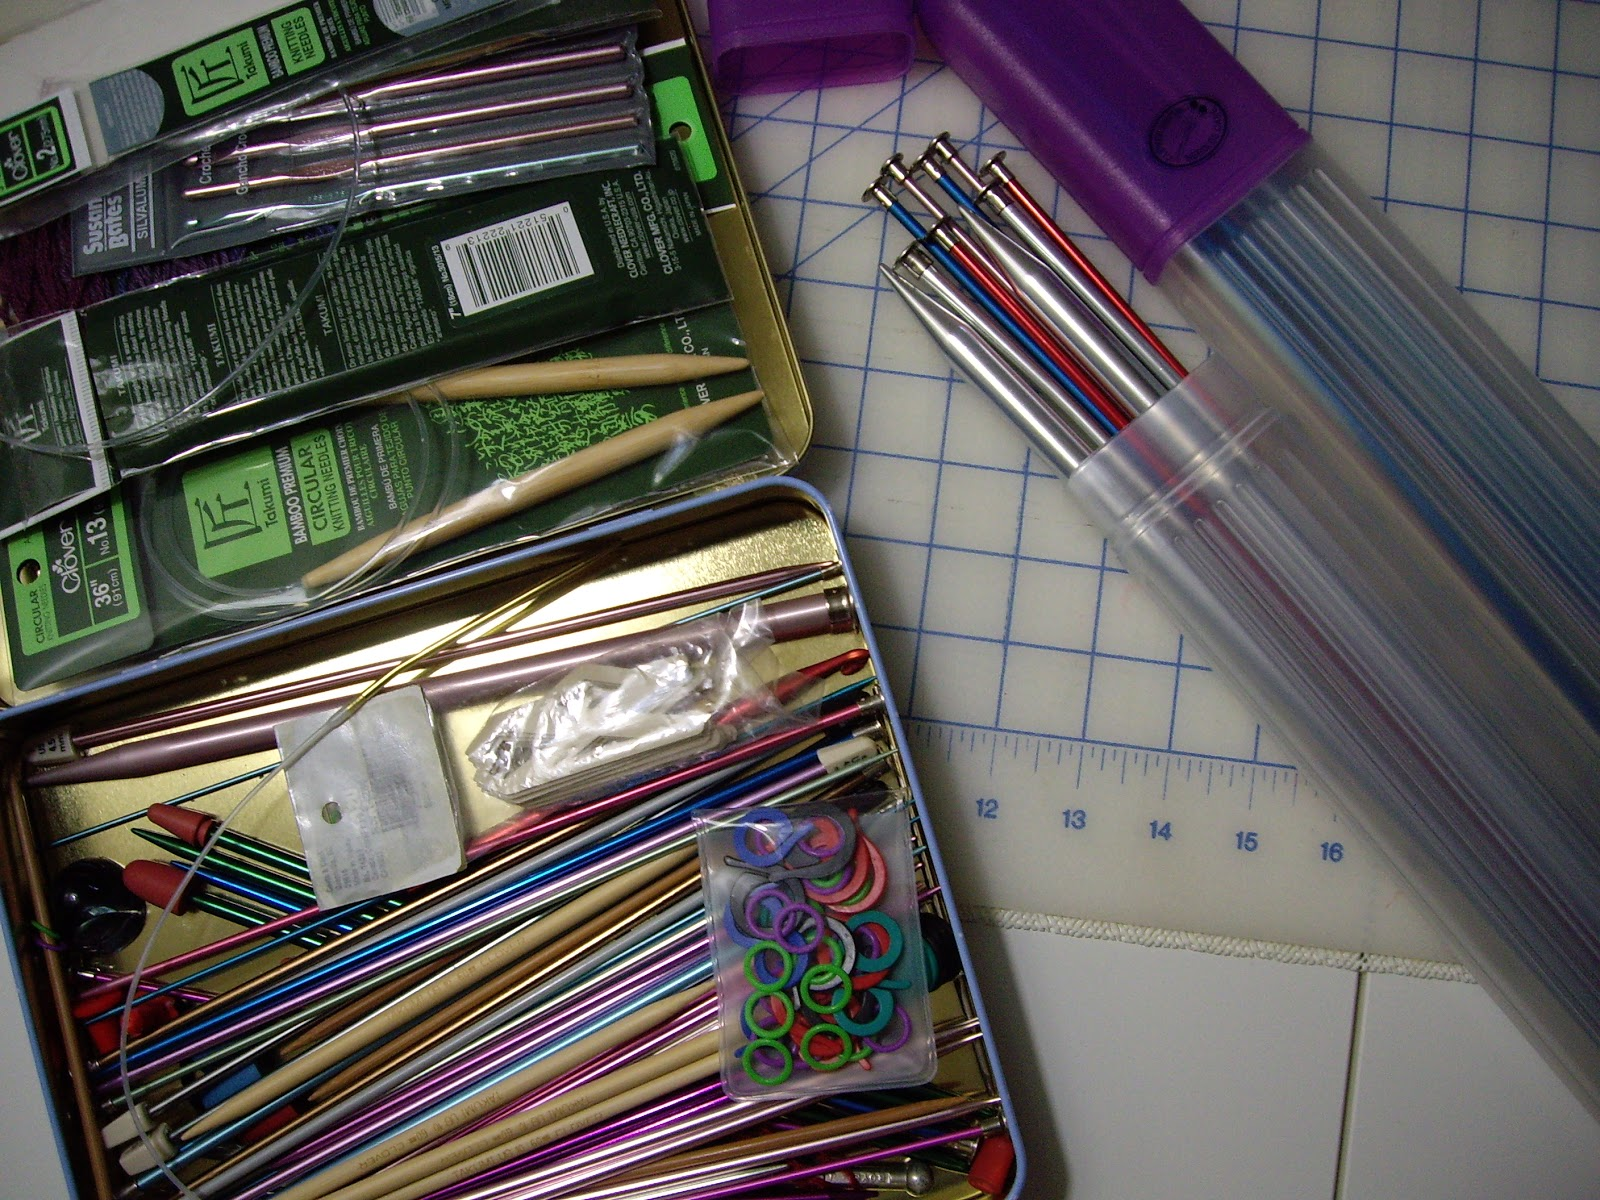 Knitting Unit Project : Sew i do organized sewing items